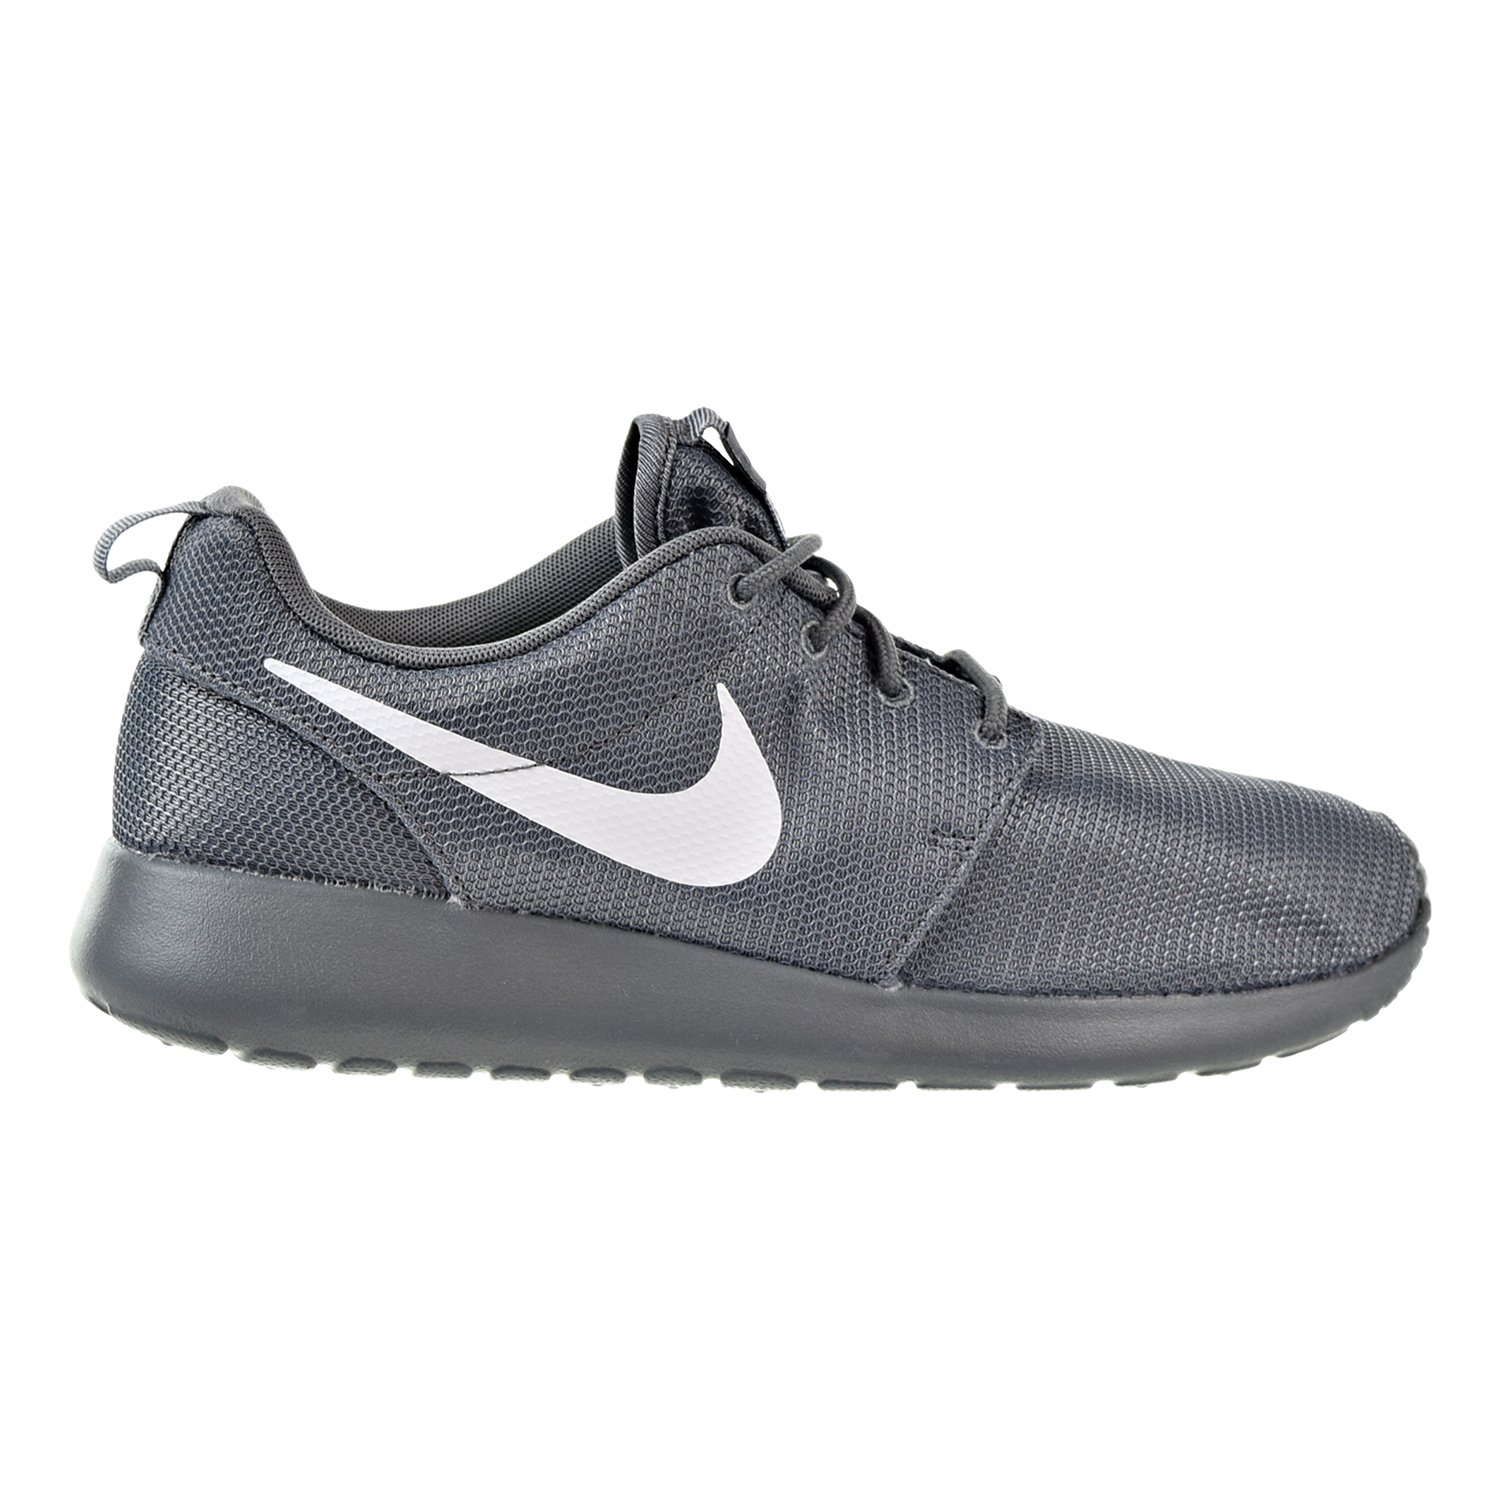 purchase cheap d65a6 4dd61 NIKE Wmns Nike Rosherun Womens Running Shoes: Amazon.co.uk: Shoes & Bags